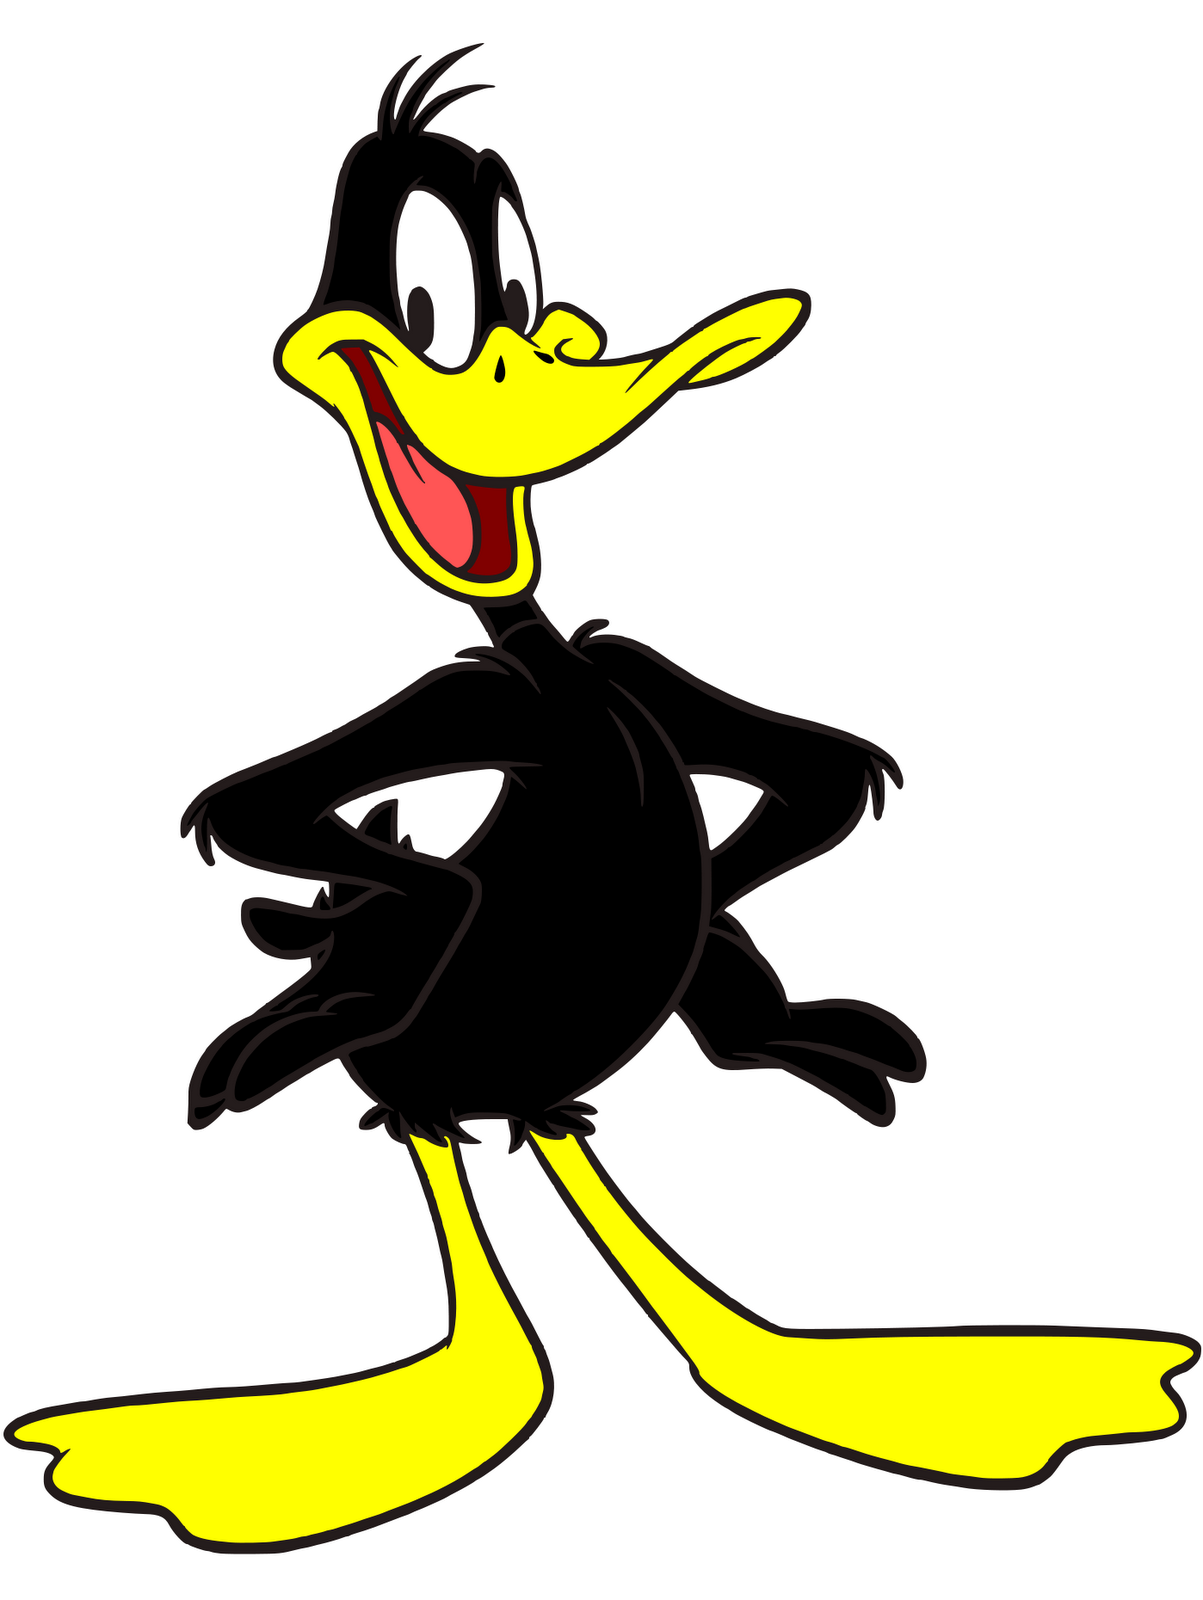 Donald Duck clipart looney tunes Duck or Daffy ect